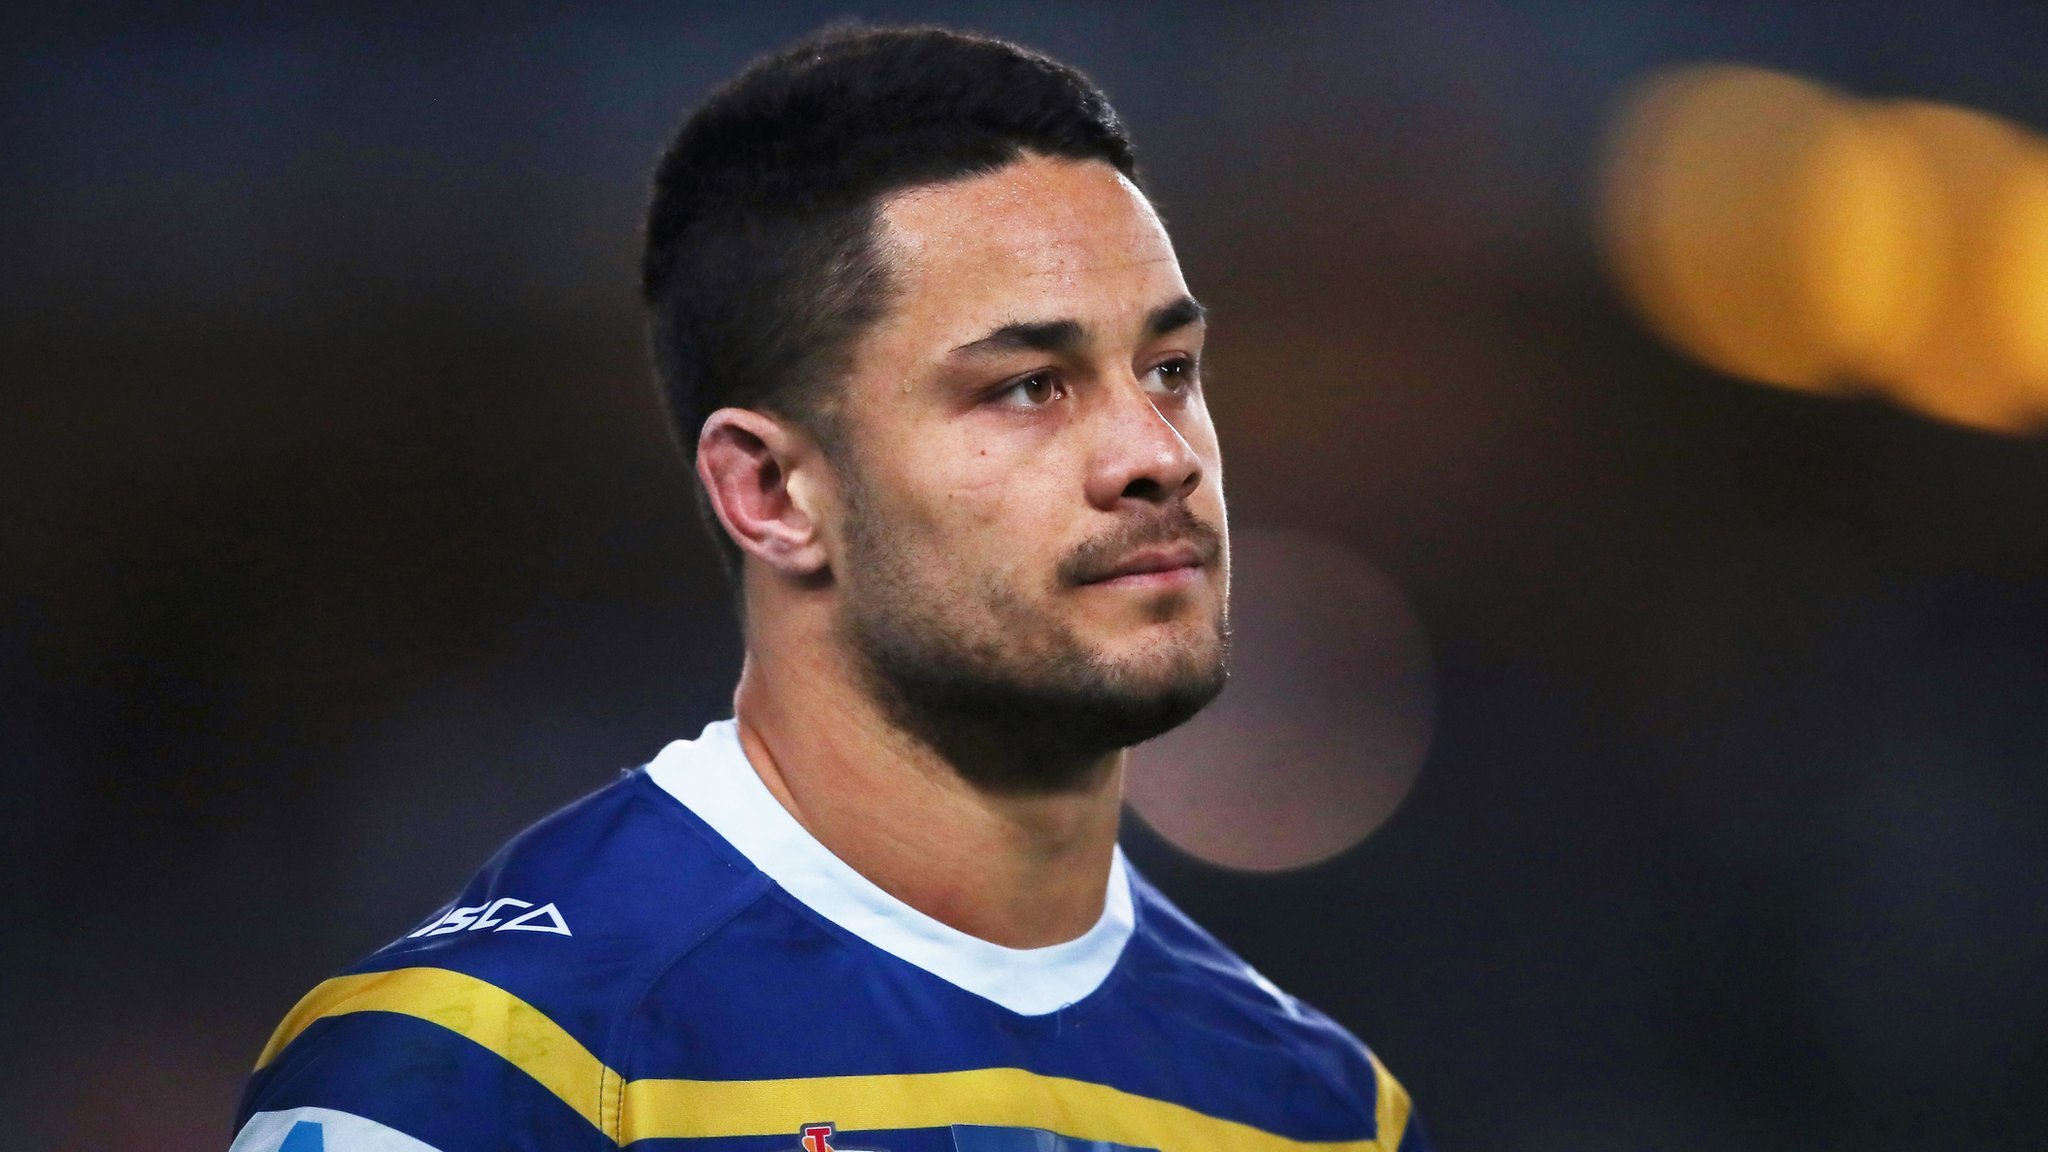 Jarryd Hayne: NRL player charged with sexual assault